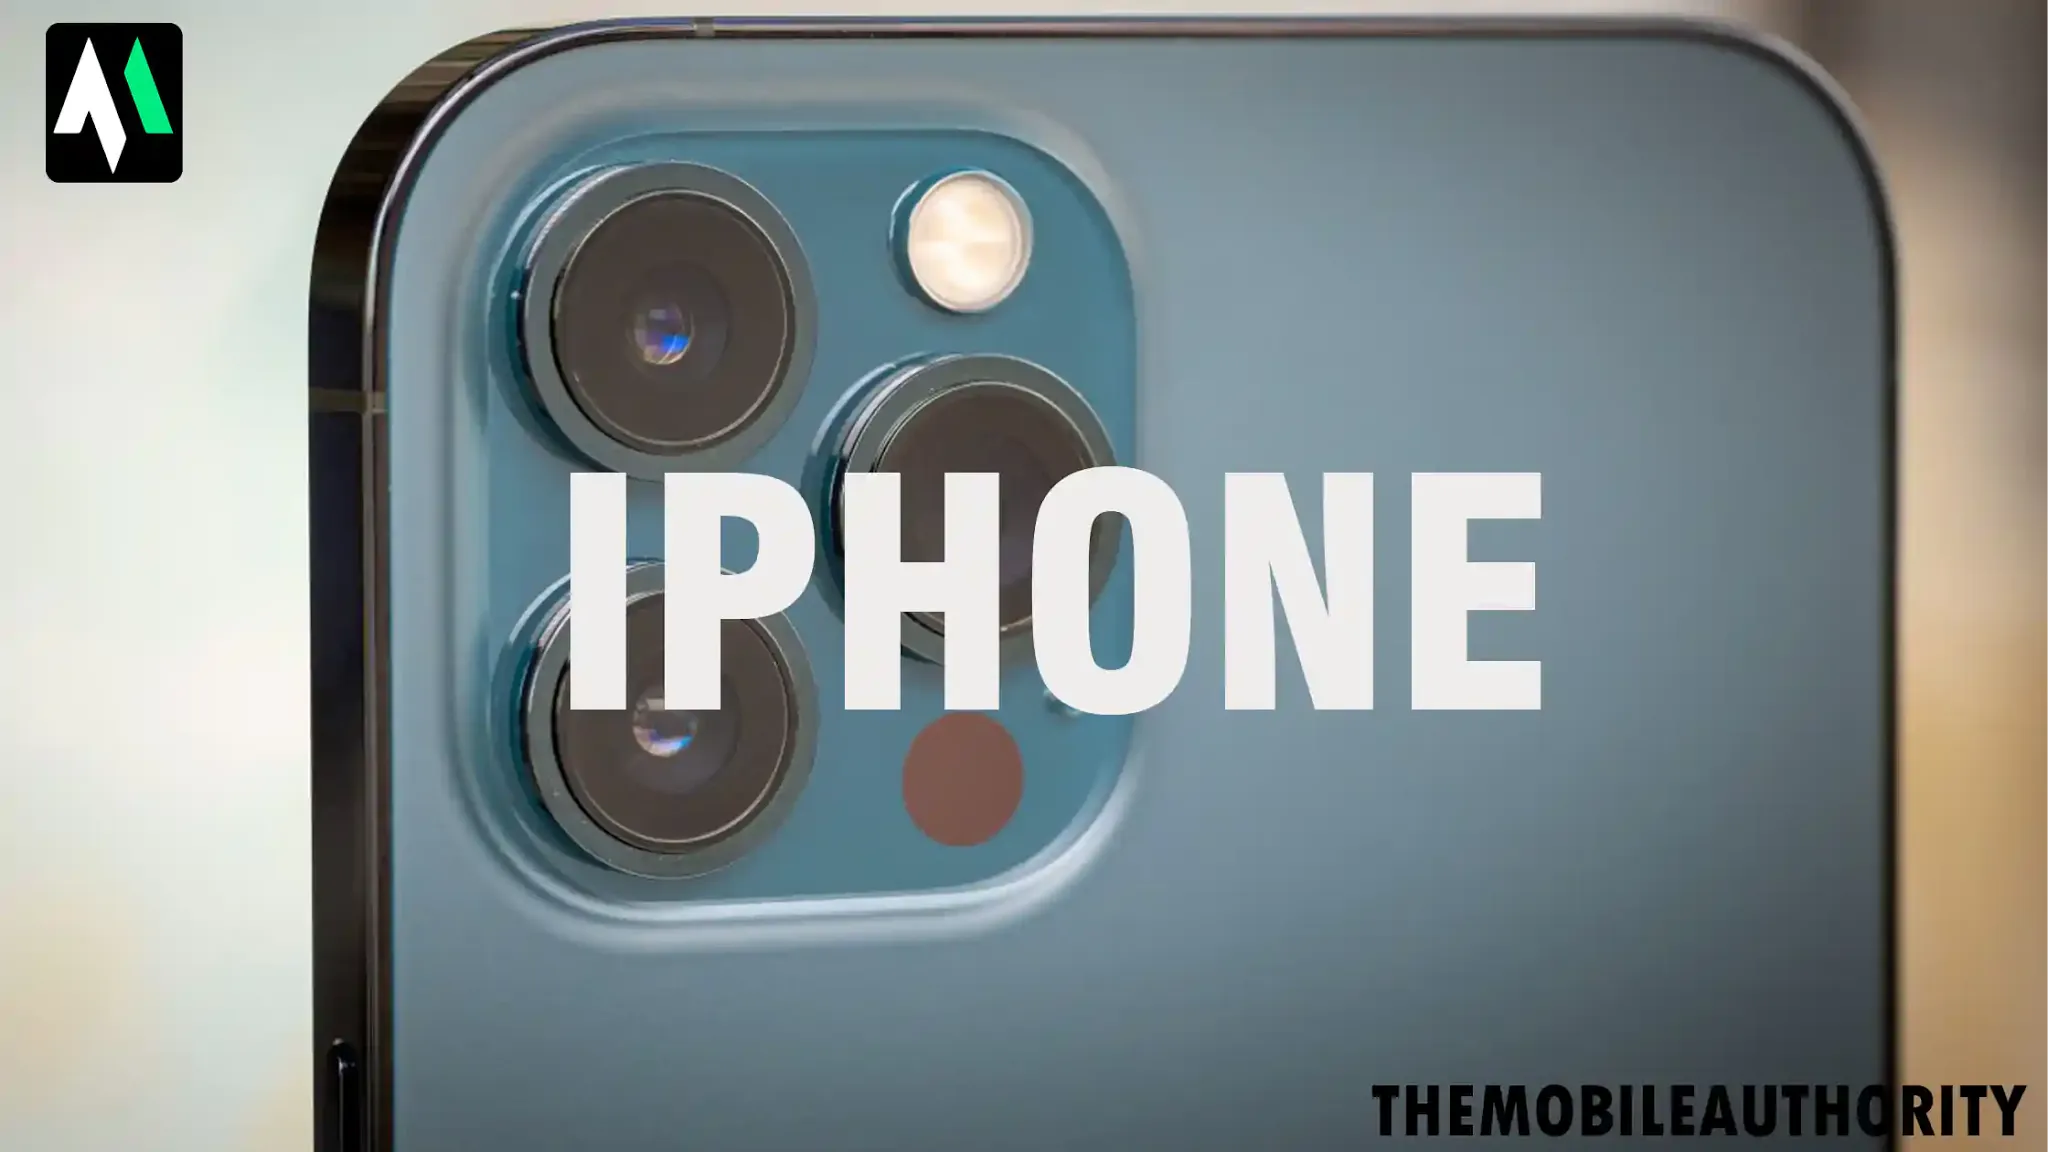 All iPhone 13 models to get upgraded ultrawide camera with f/1.8 optics